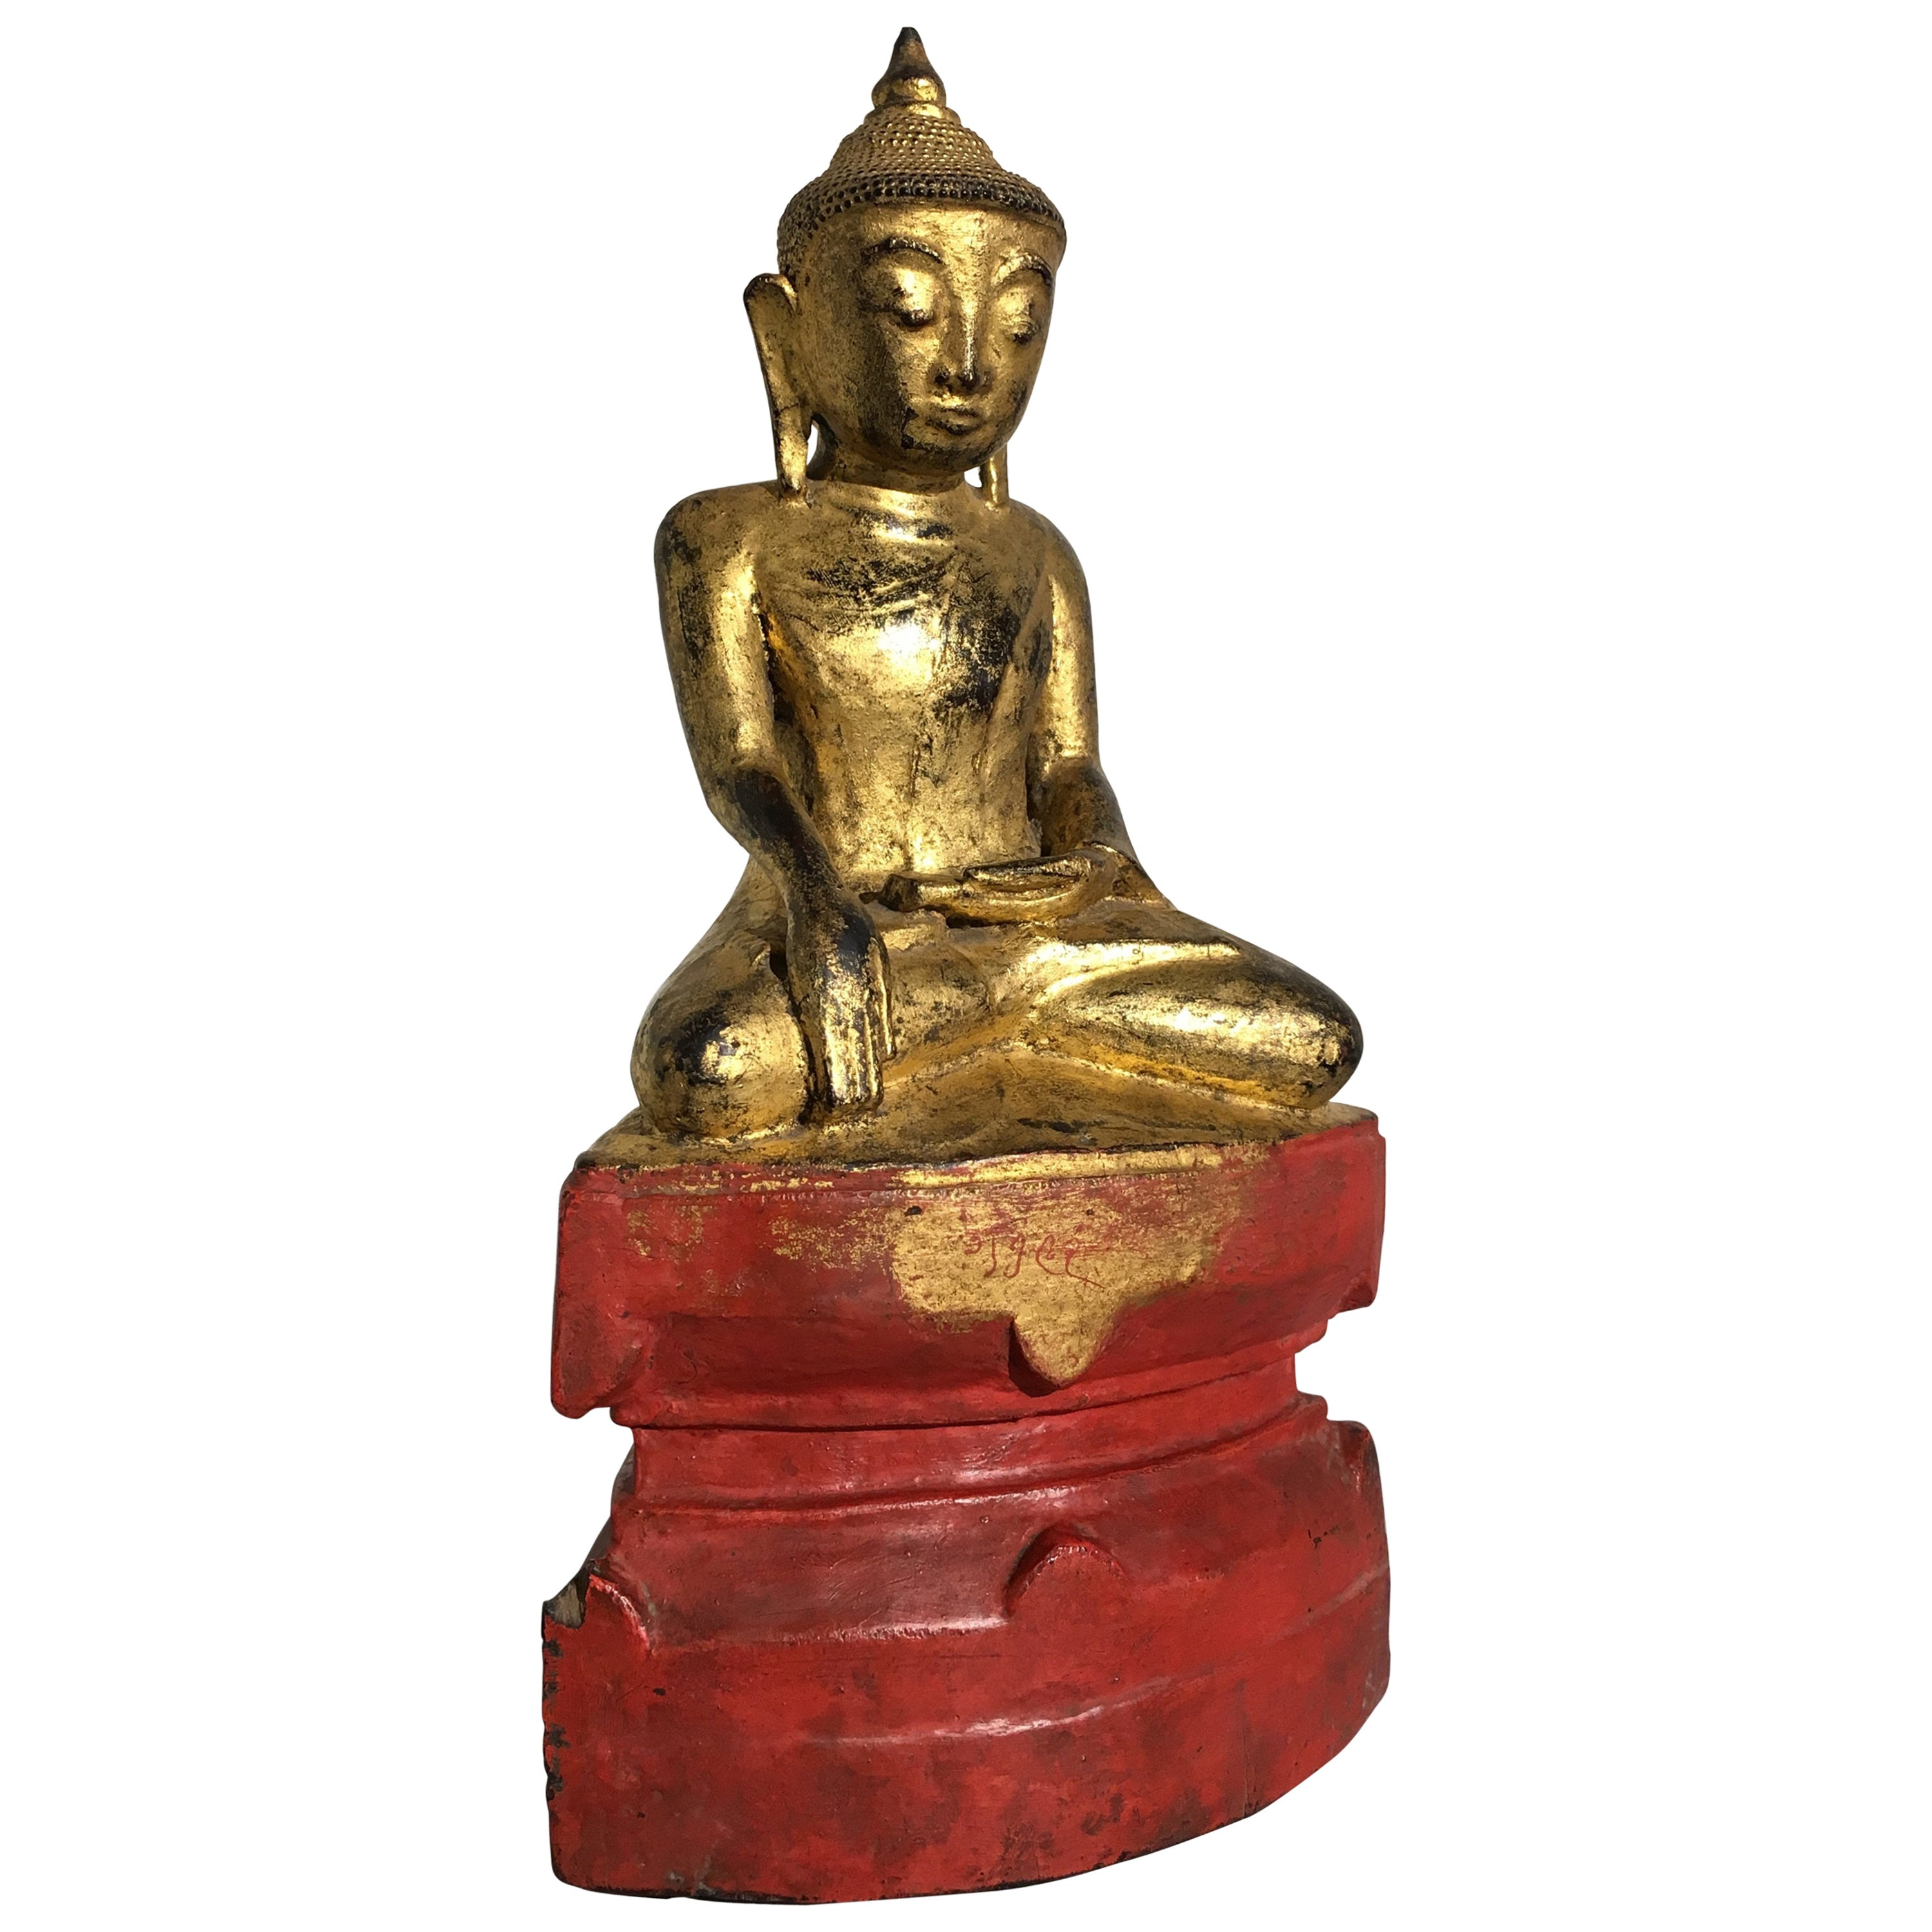 Shan Burmese Lacquered and Gilt Wood Buddha, Ava Period, 18th Century